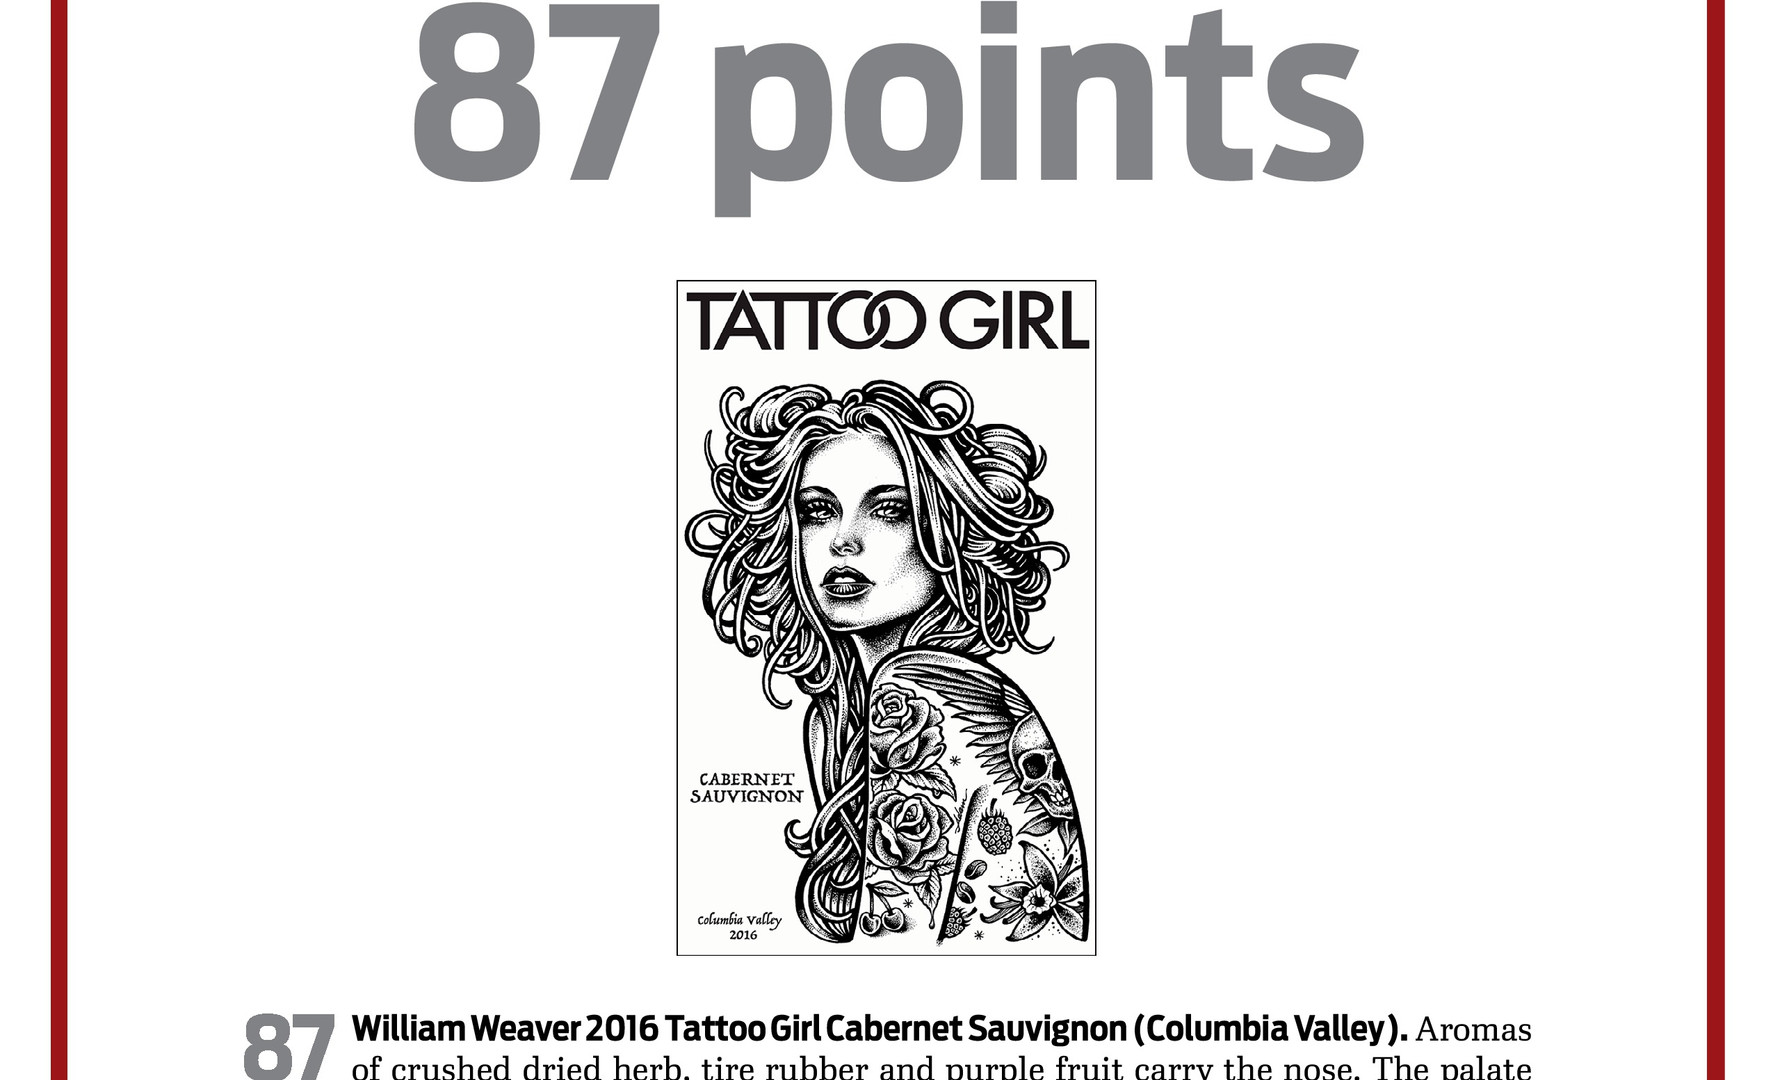 2016 Tattoo Girl Cabernet Sauvignon